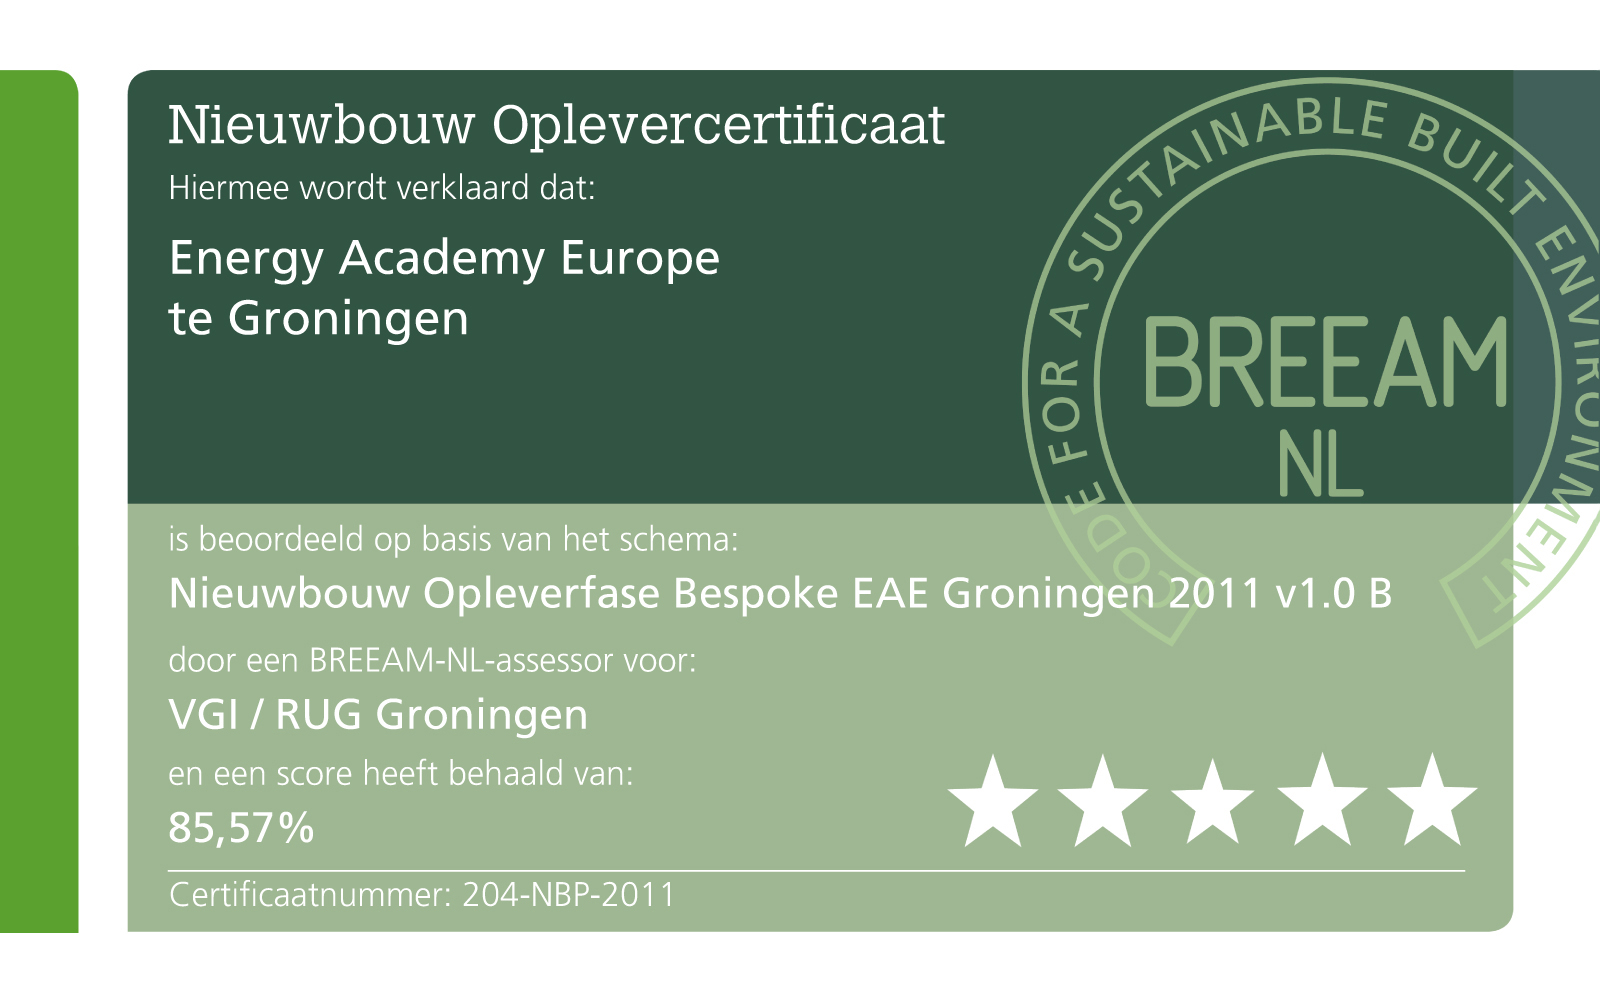 BREEAM energy academy